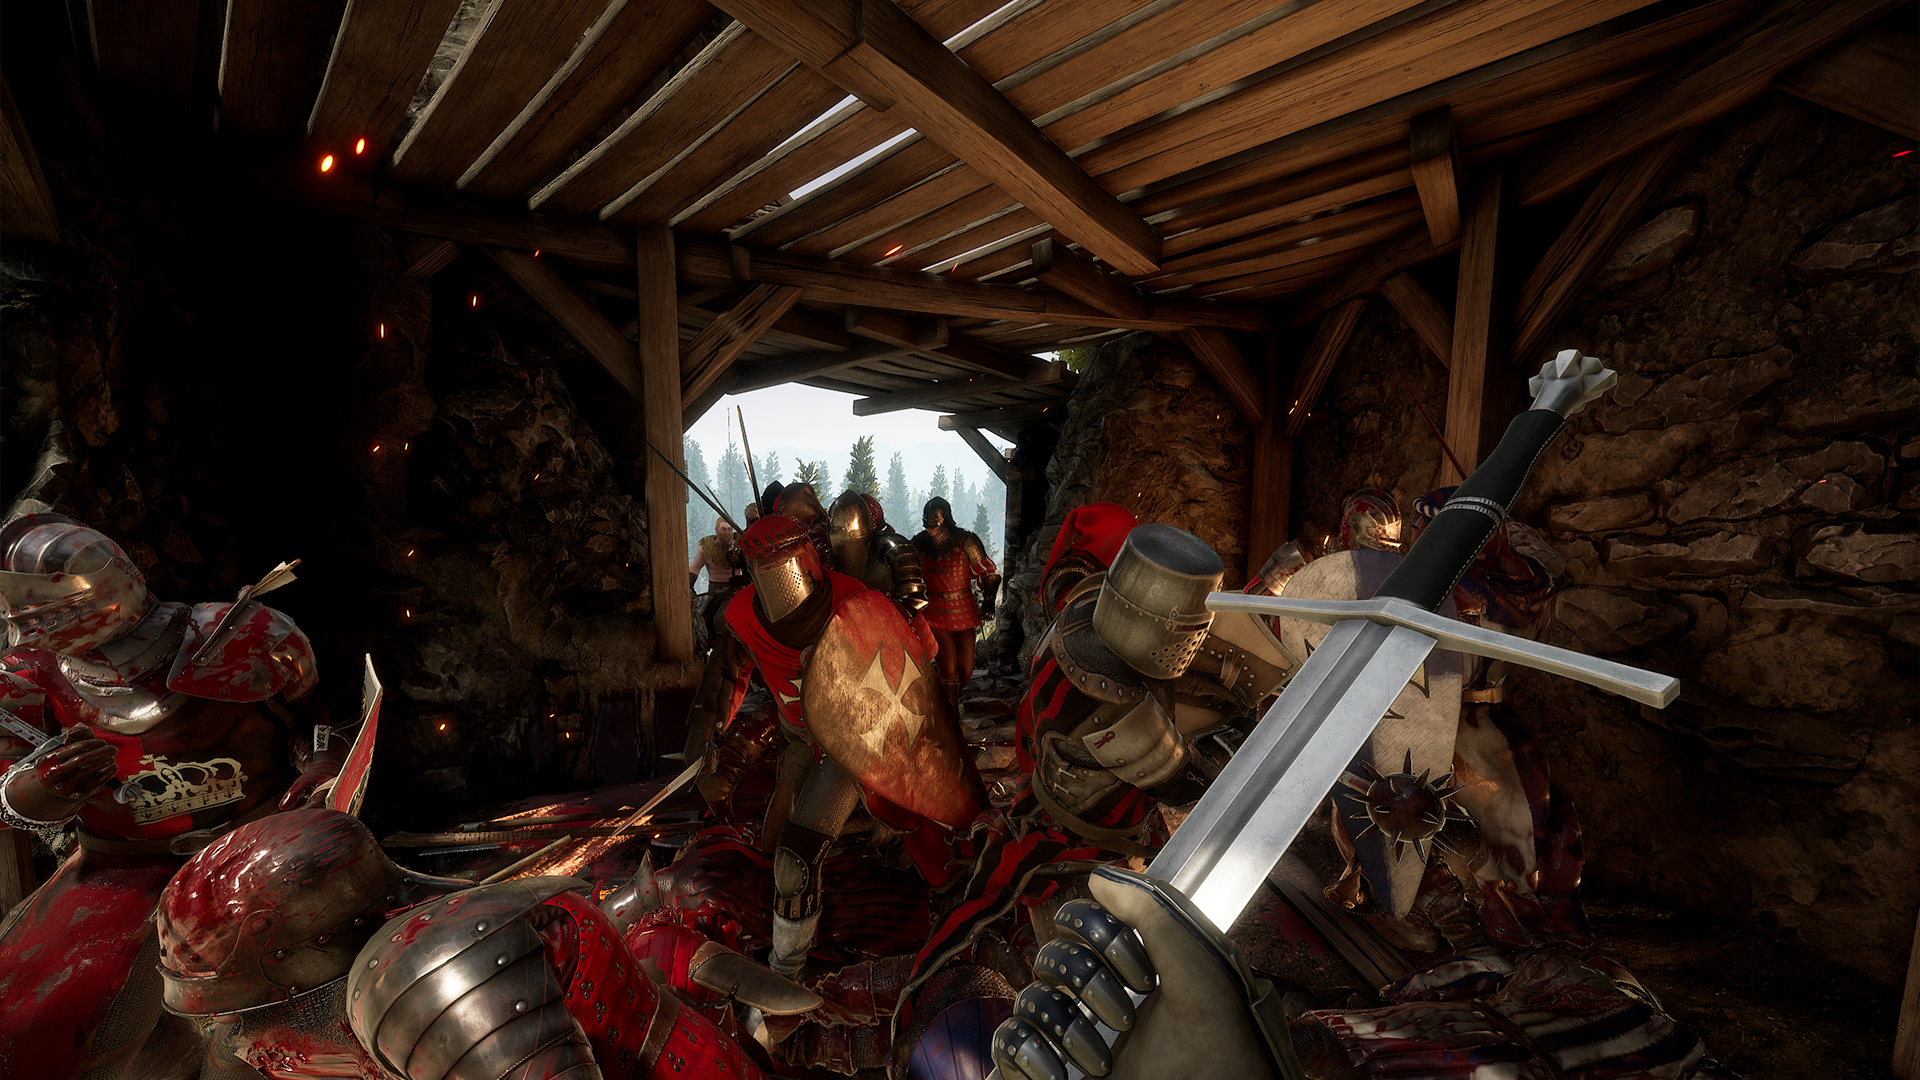 Mordhau tips: our guide on slashing your way through the